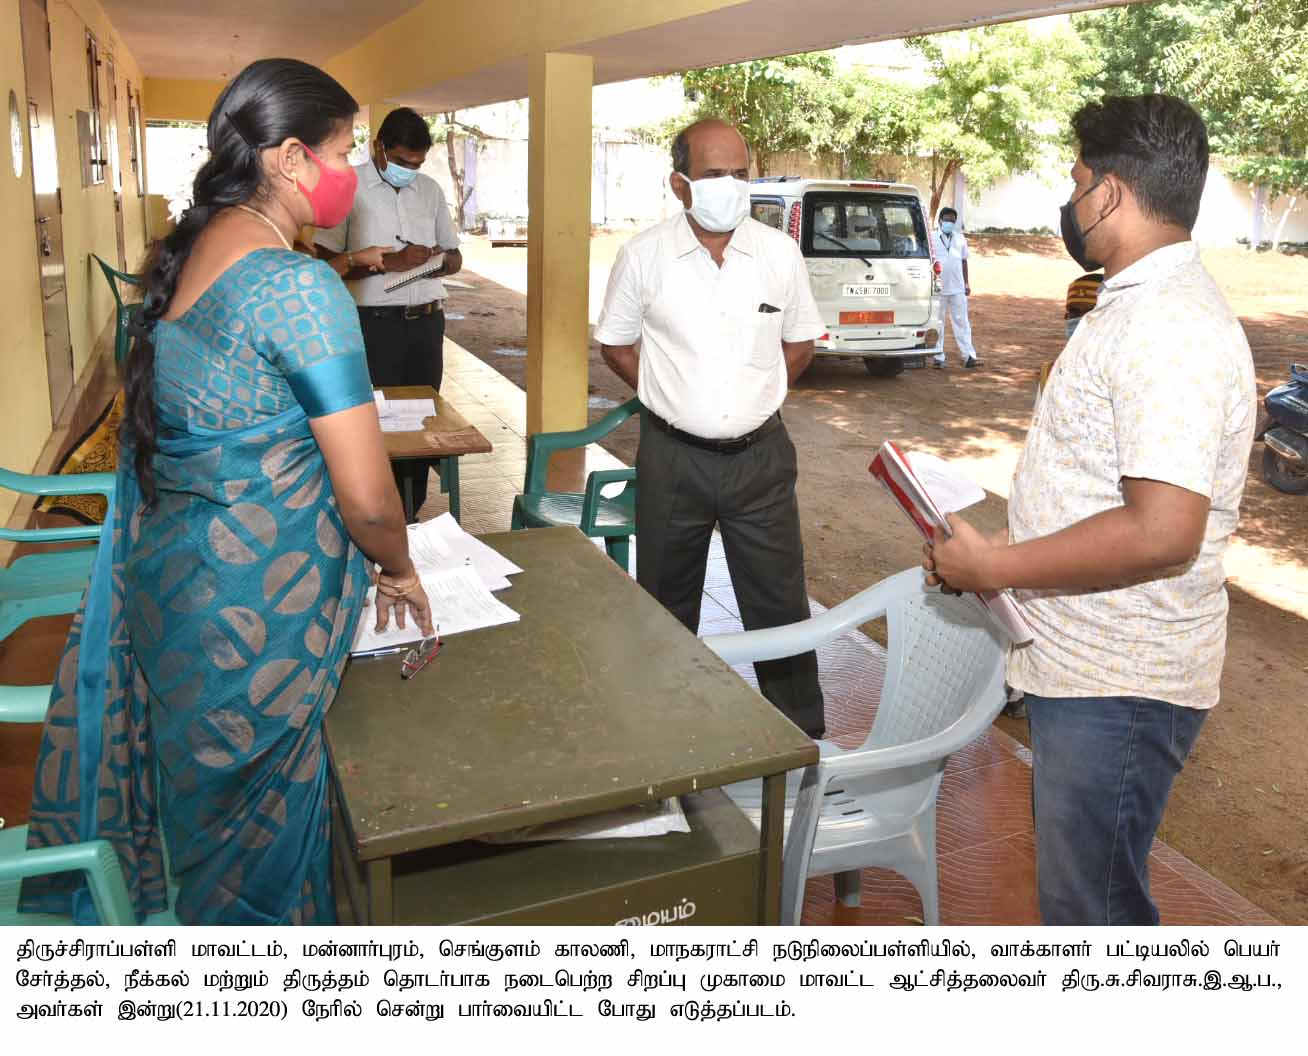 District Collector Inspected the Electoral Roll Spl. Summary Revision Camps on 21.11.2020